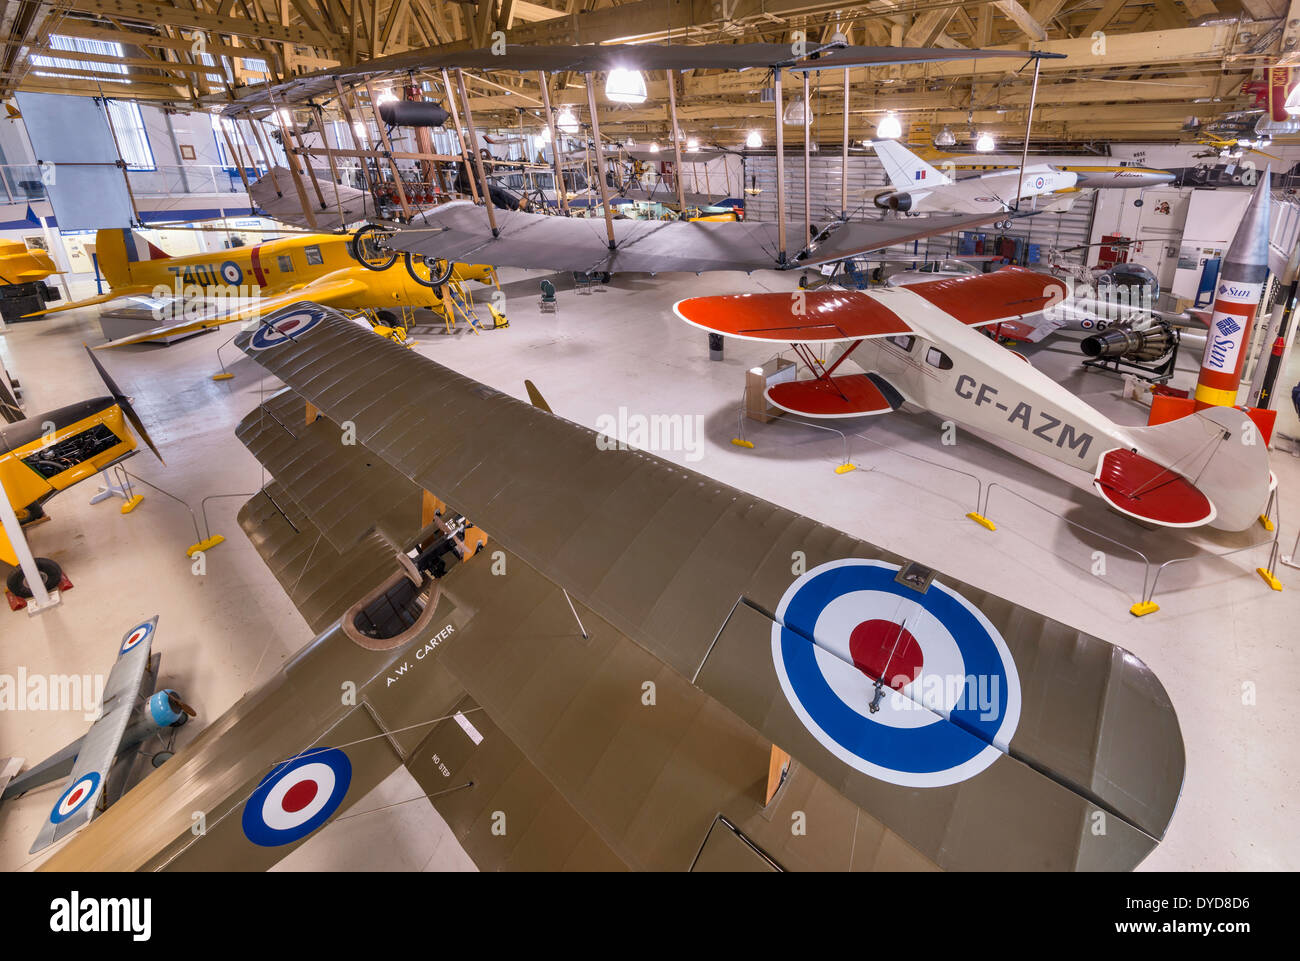 Sopwith Triplane, WW1 fighter replica in foreground at Main Hangar, Aero Space Museum, Calgary, Alberta, Canada - Stock Image